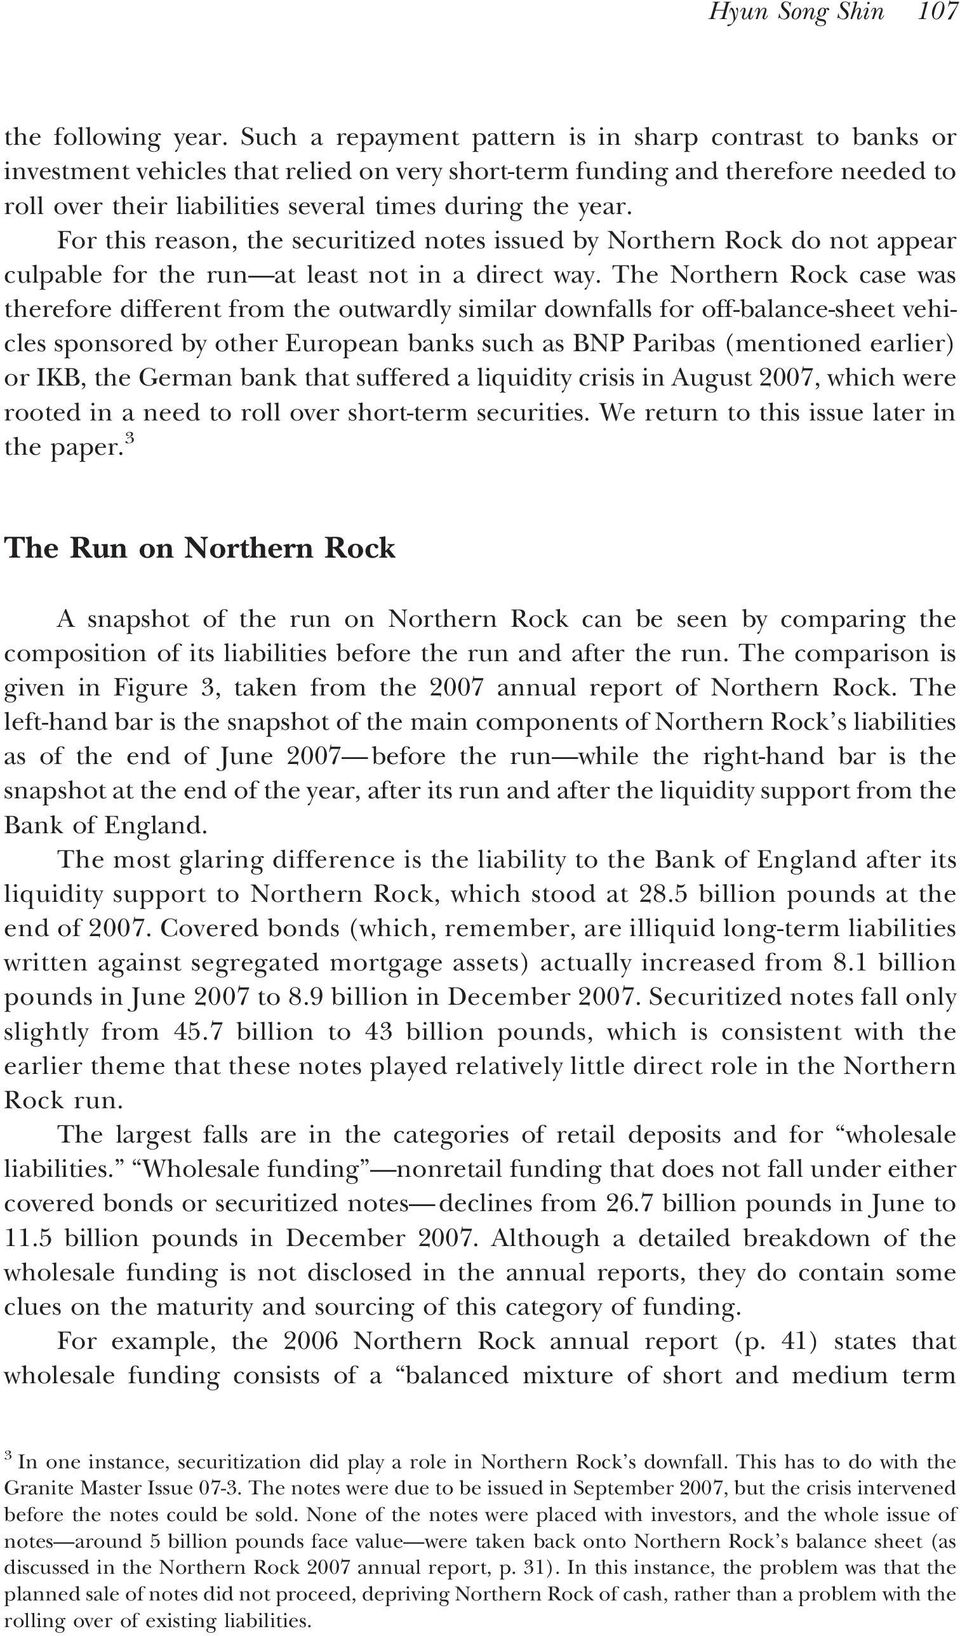 For this reason, the securitized notes issued by Northern Rock do not appear culpable for the run at least not in a direct way.